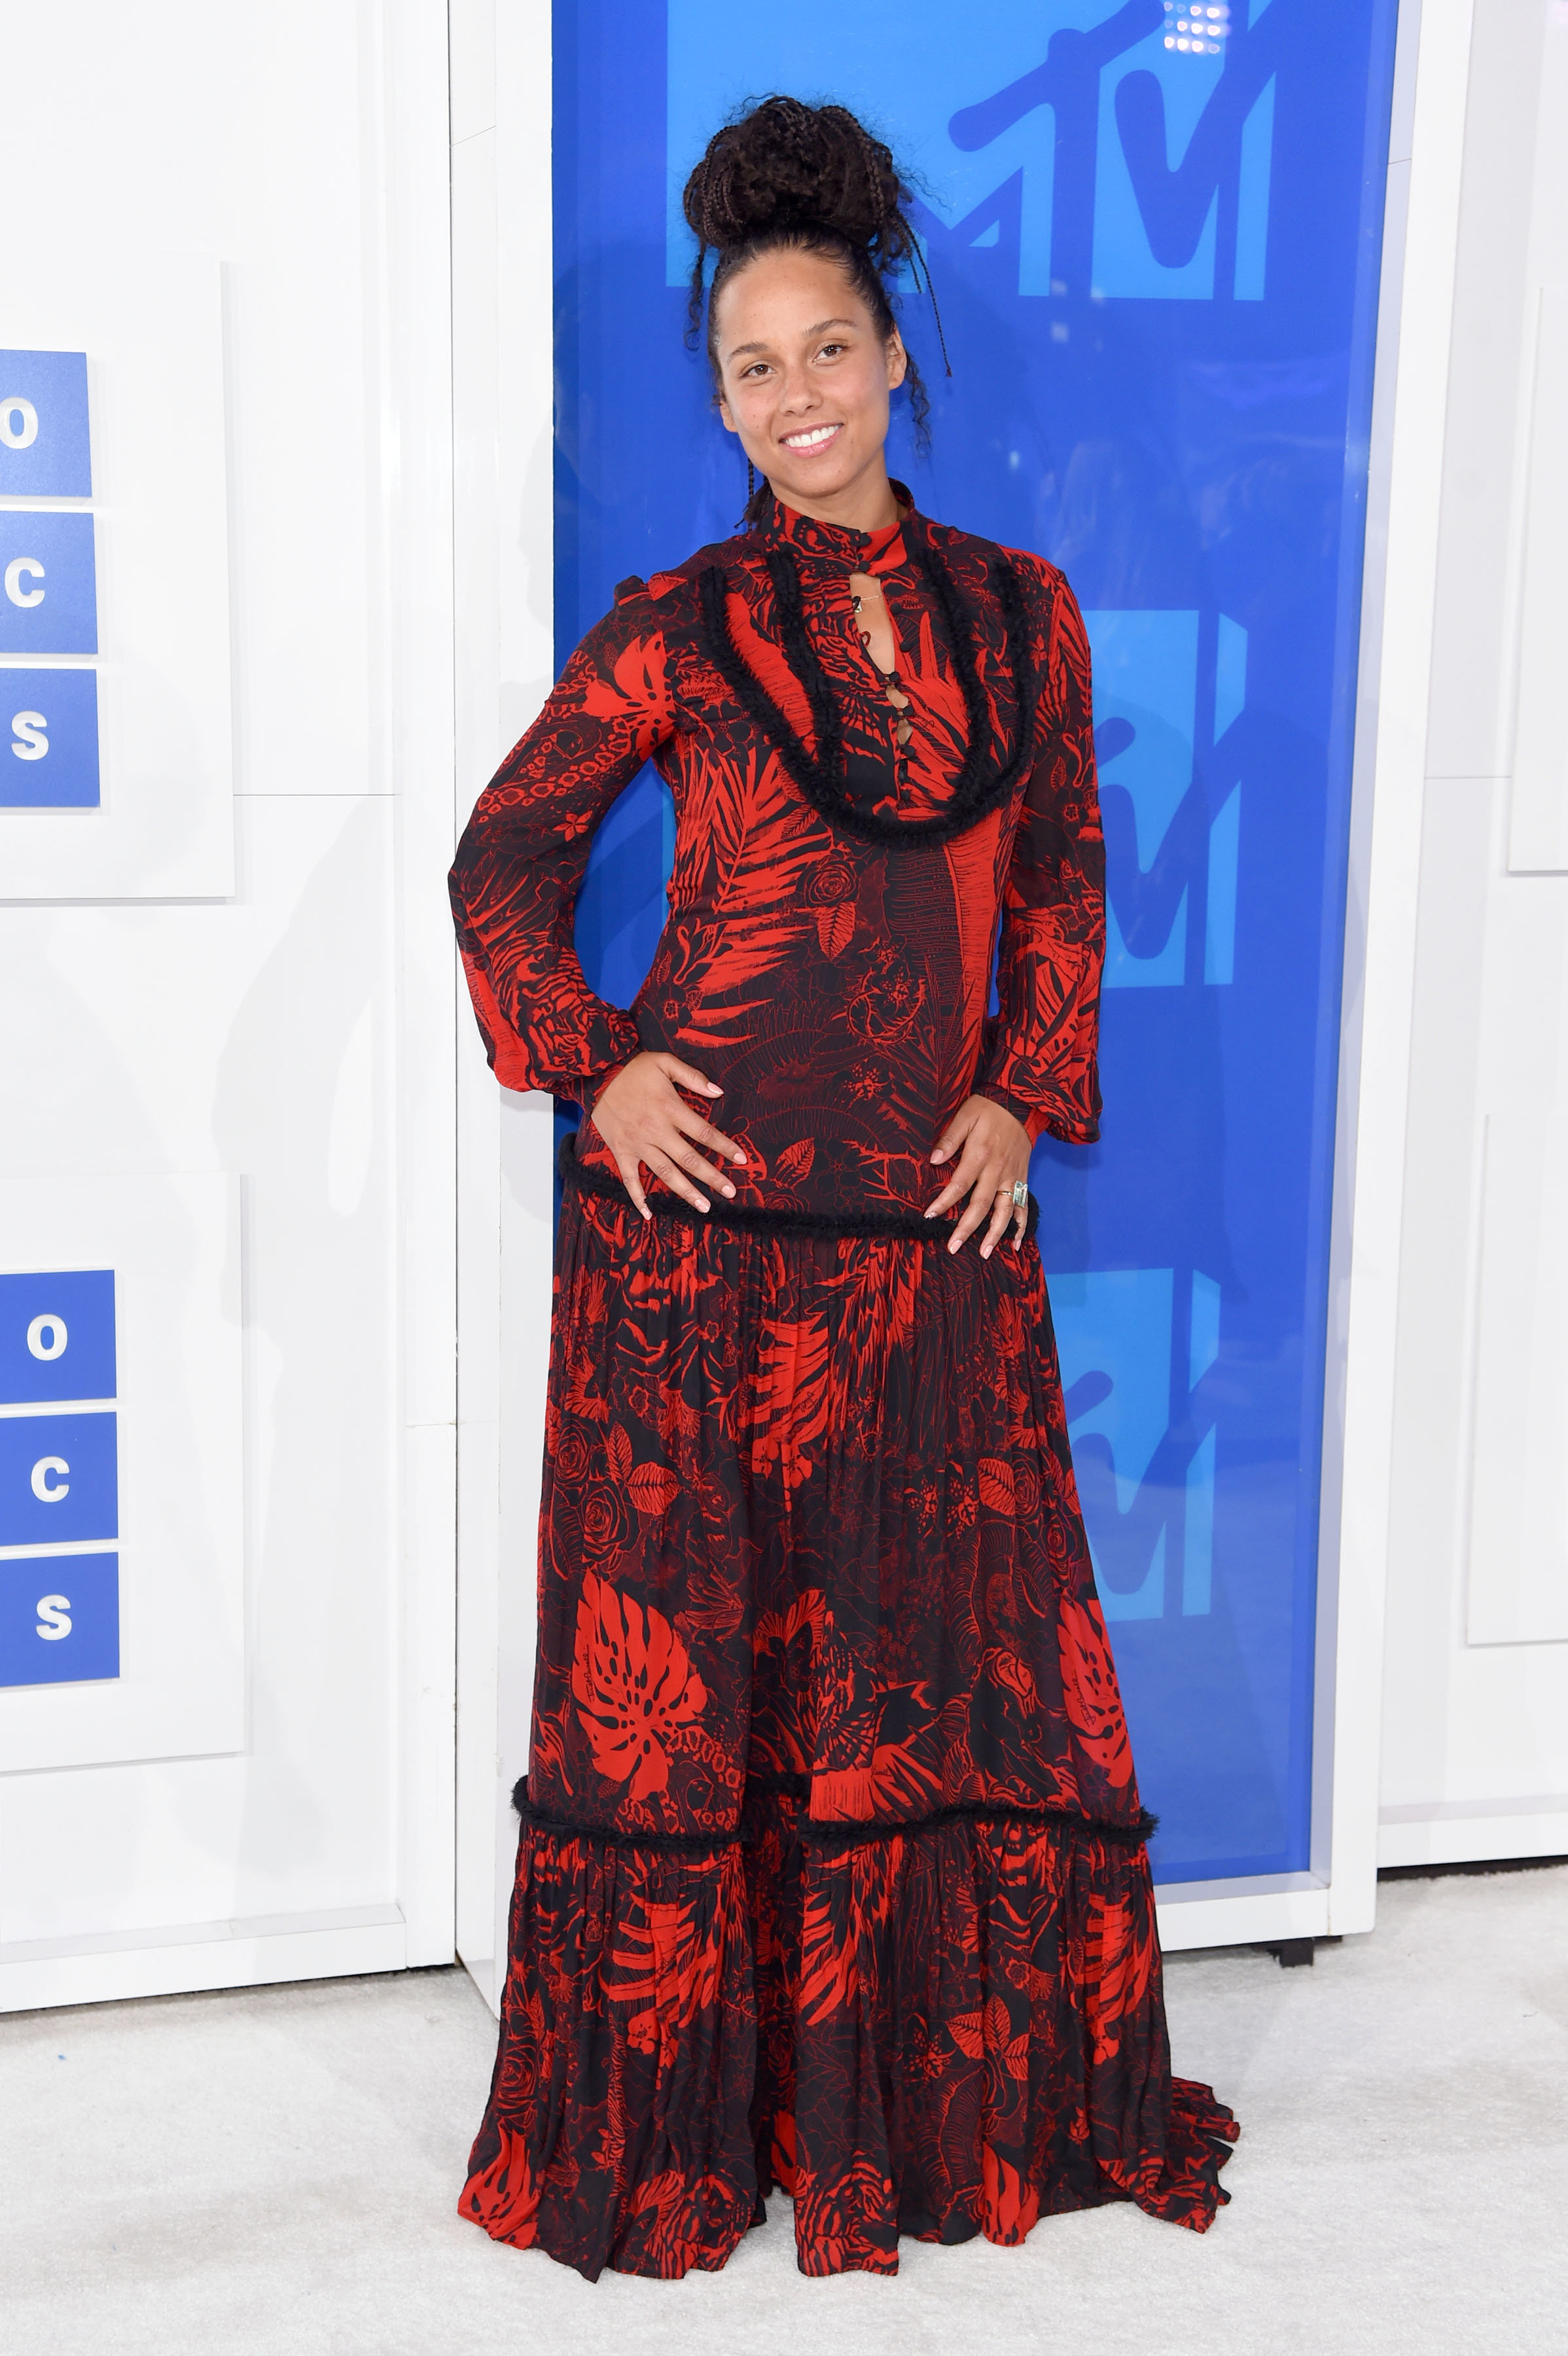 Alicia Keys tweets about her makeup free VMA appearance